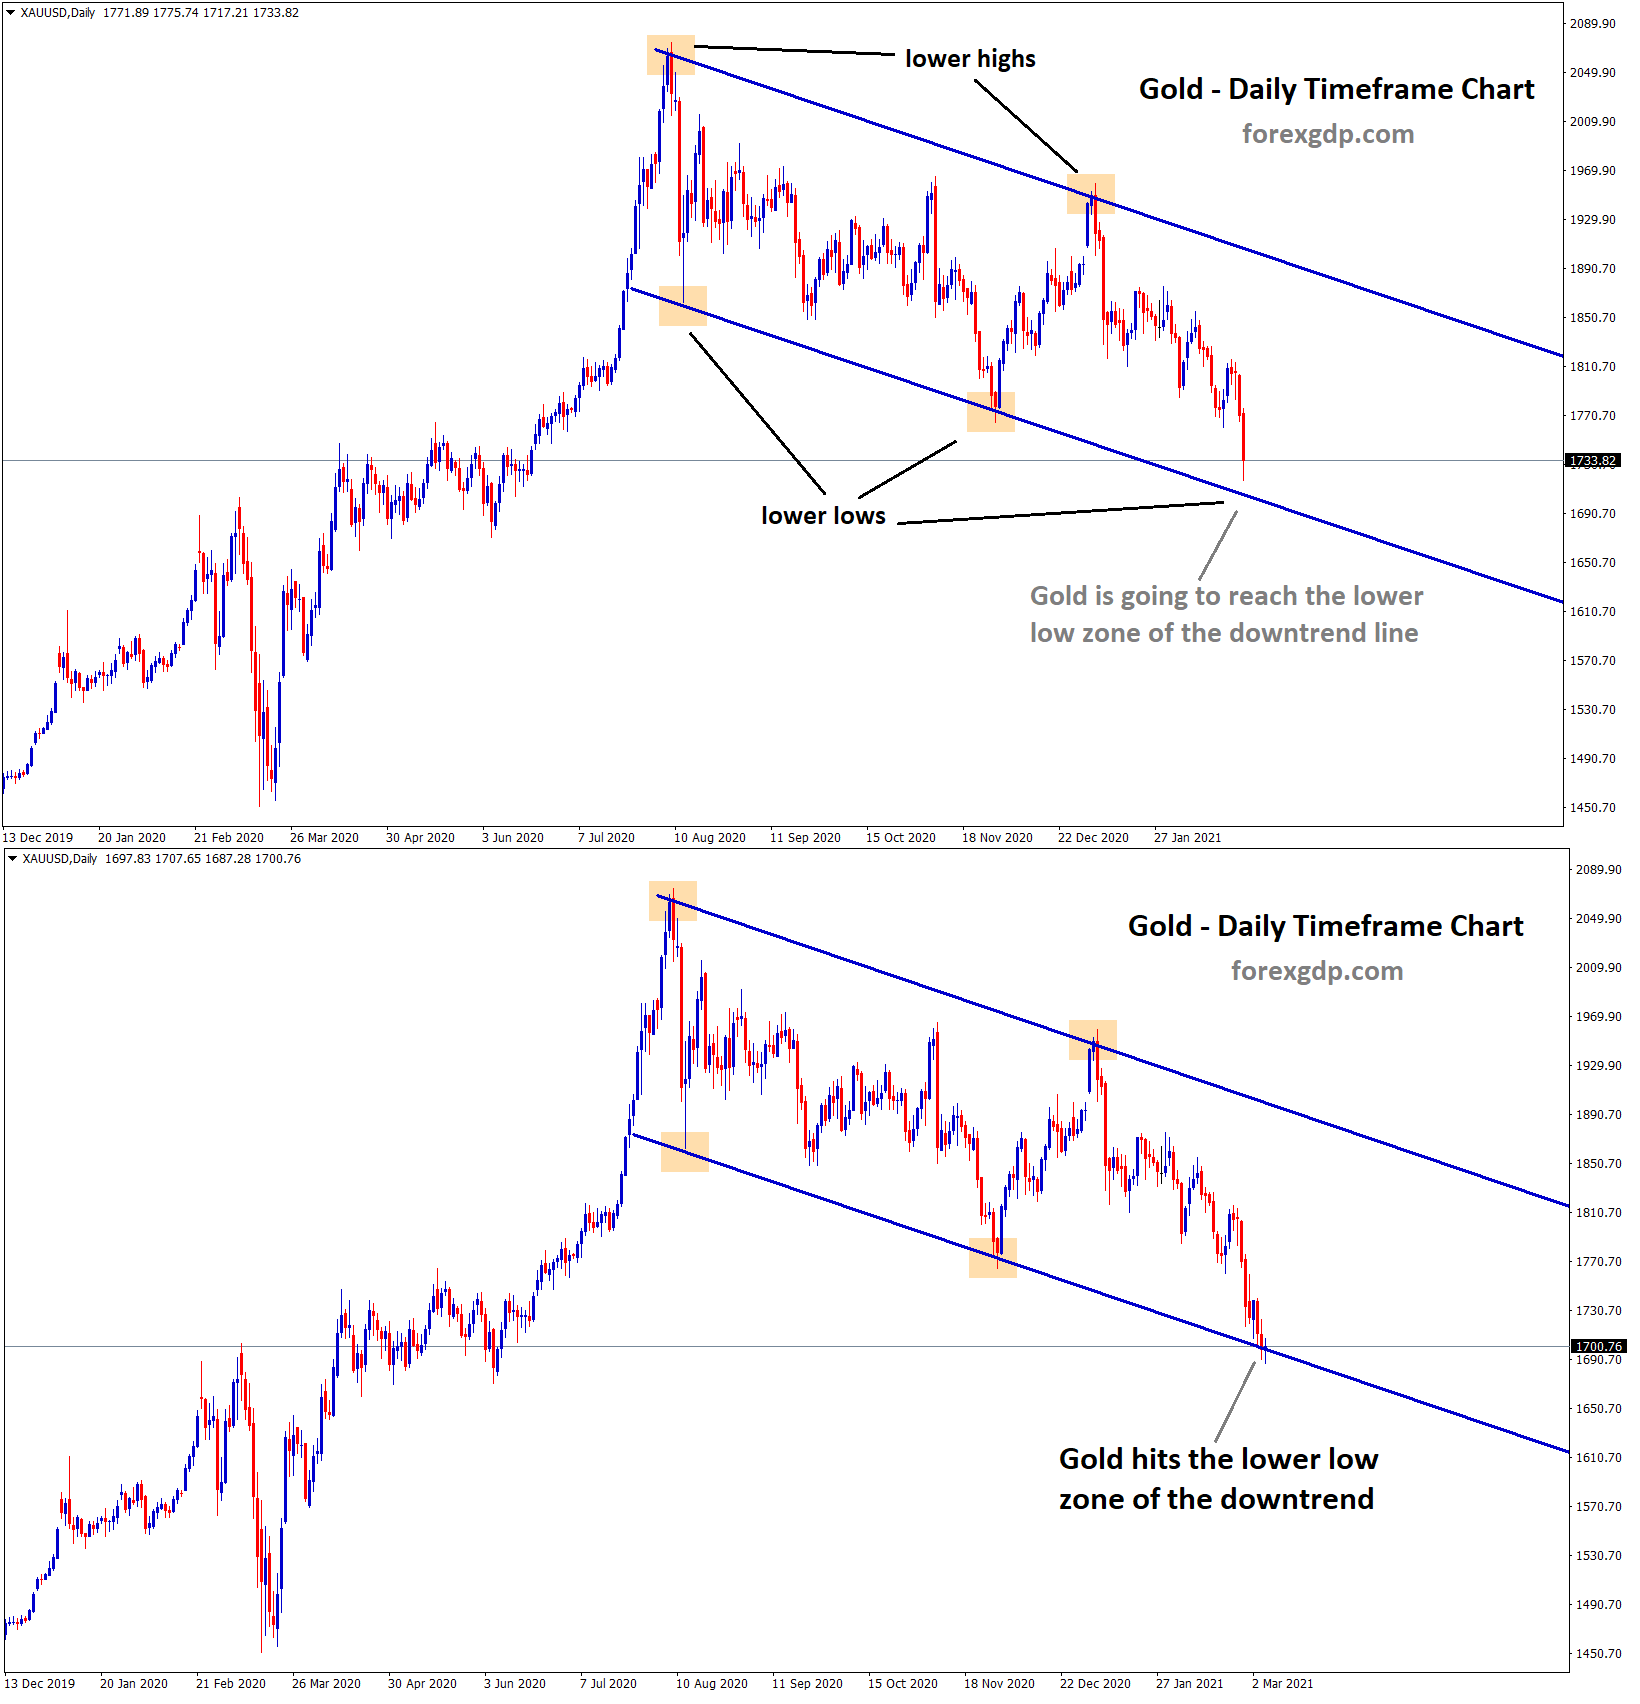 Gold hits the lower low zone of the downtrend line